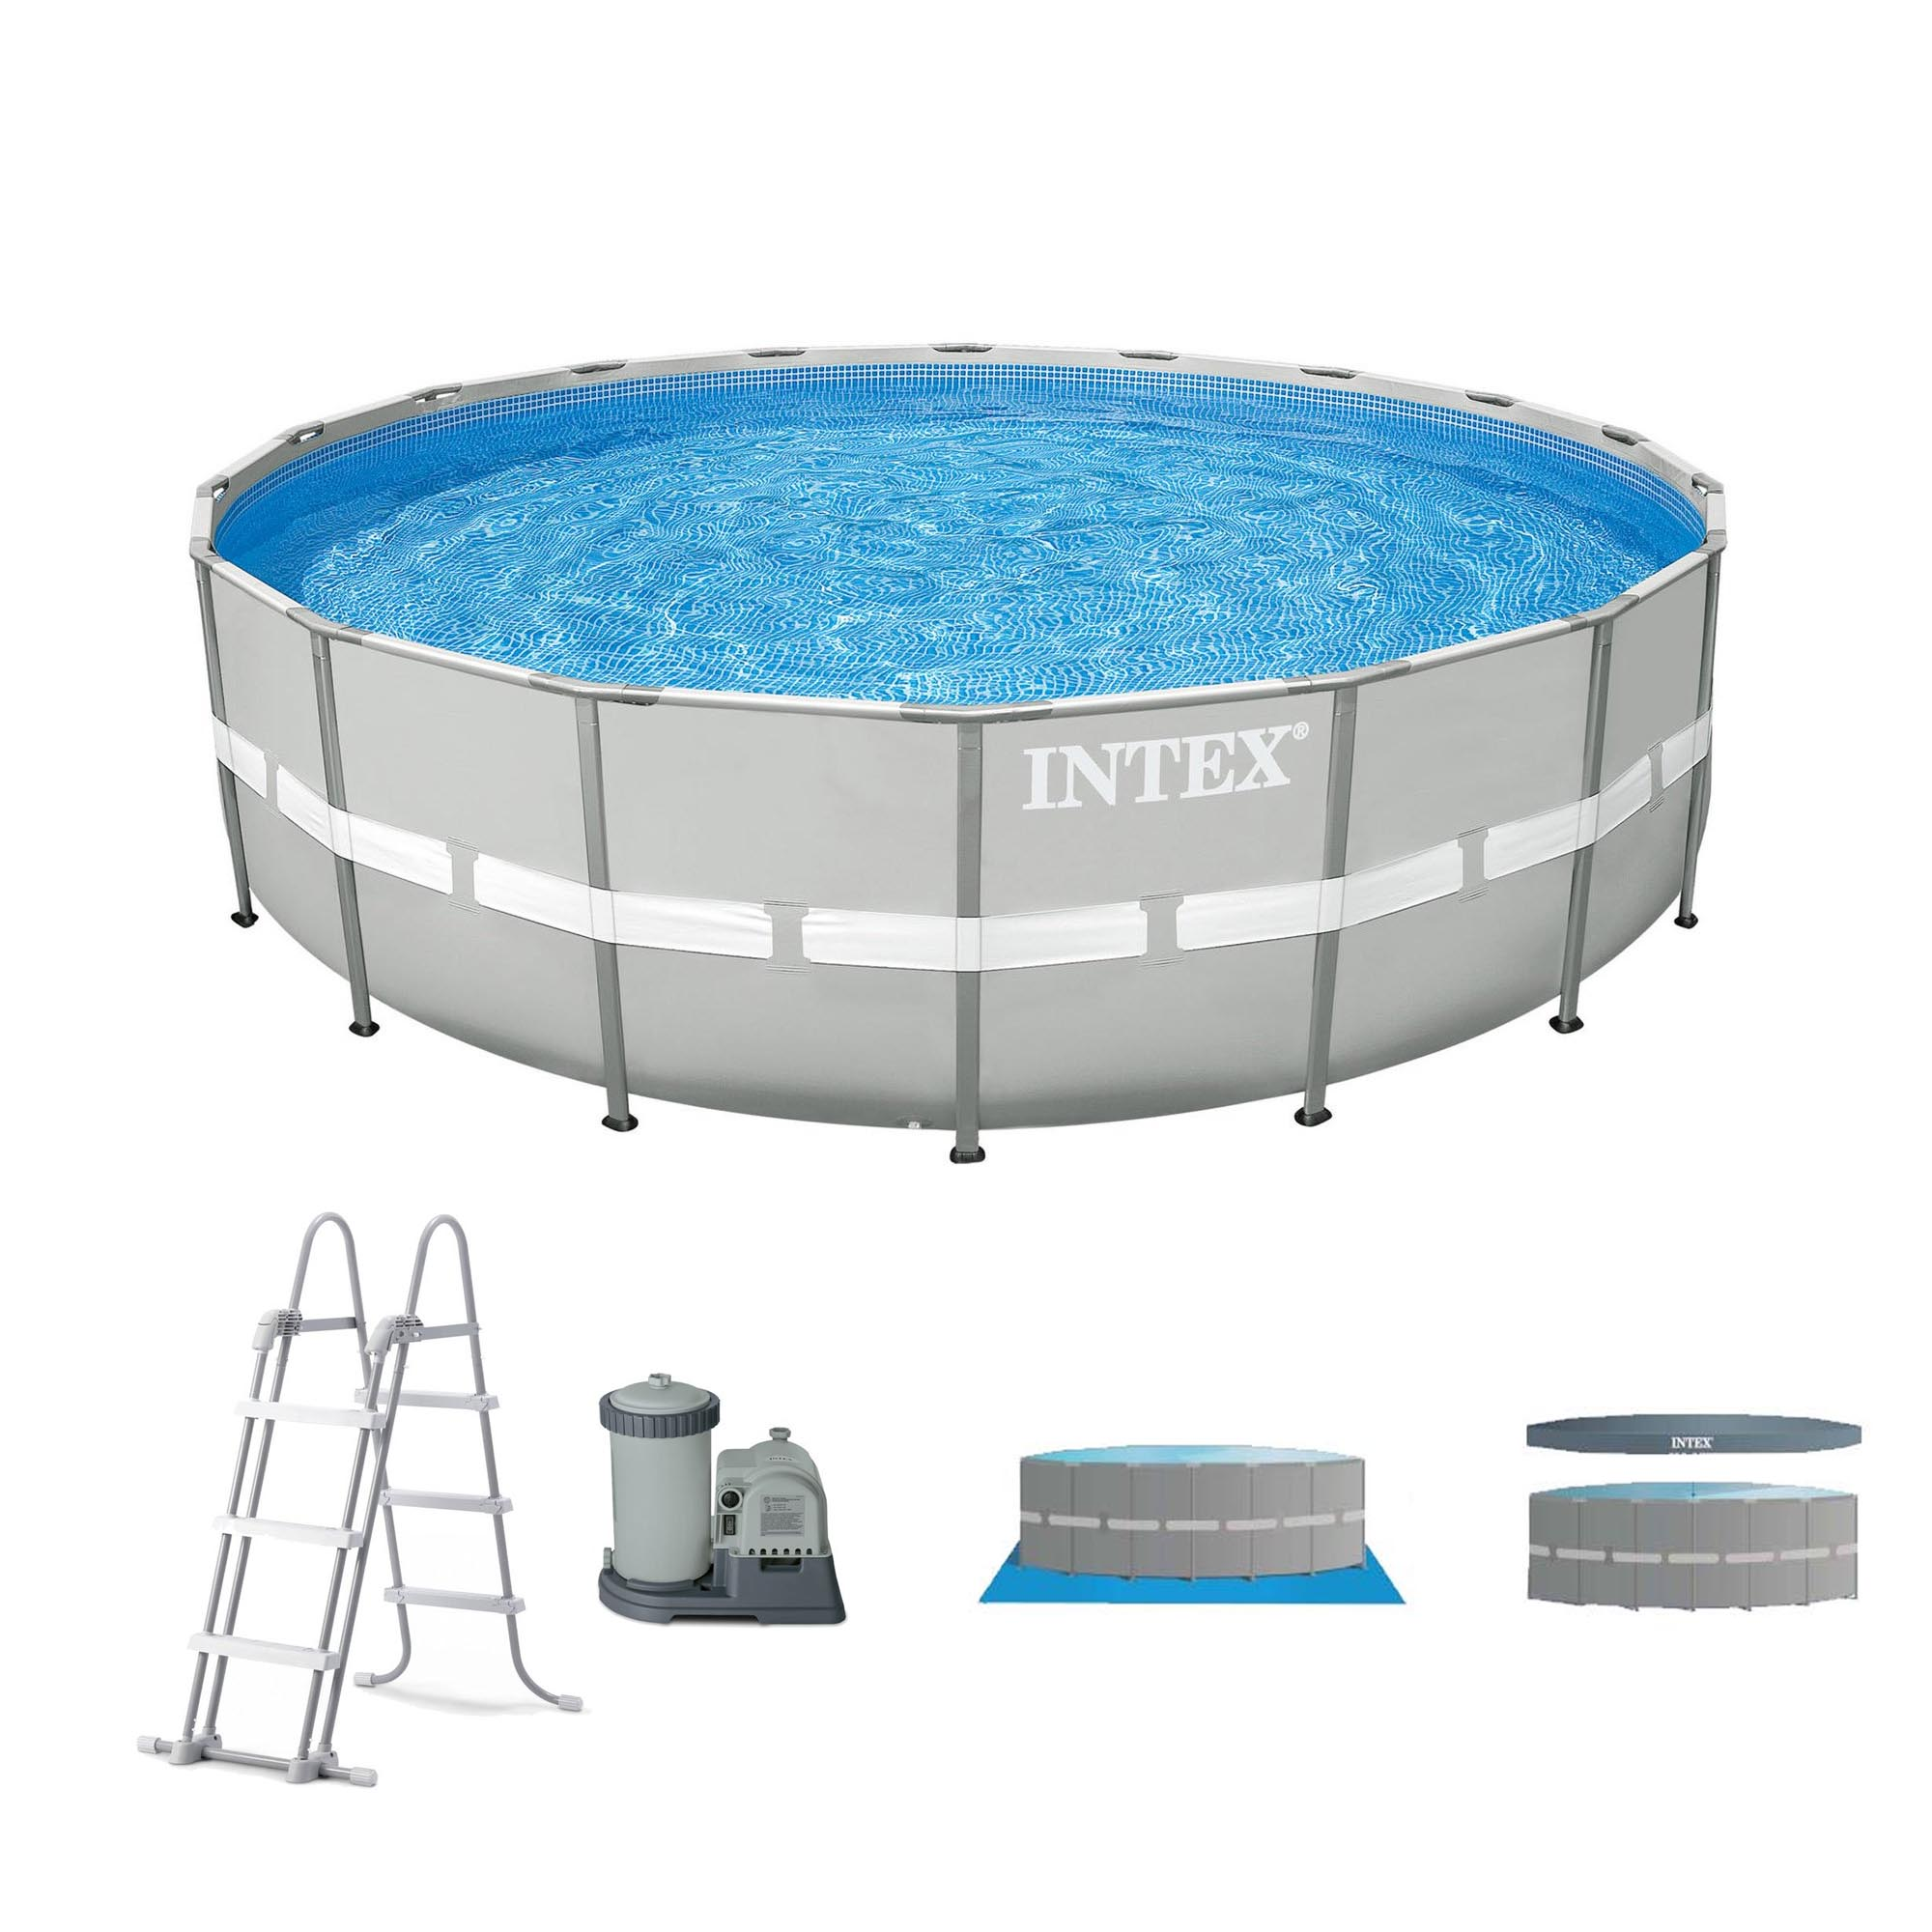 Intex 20 39 x 48 ultra frame above ground swimming pool set for On ground pools